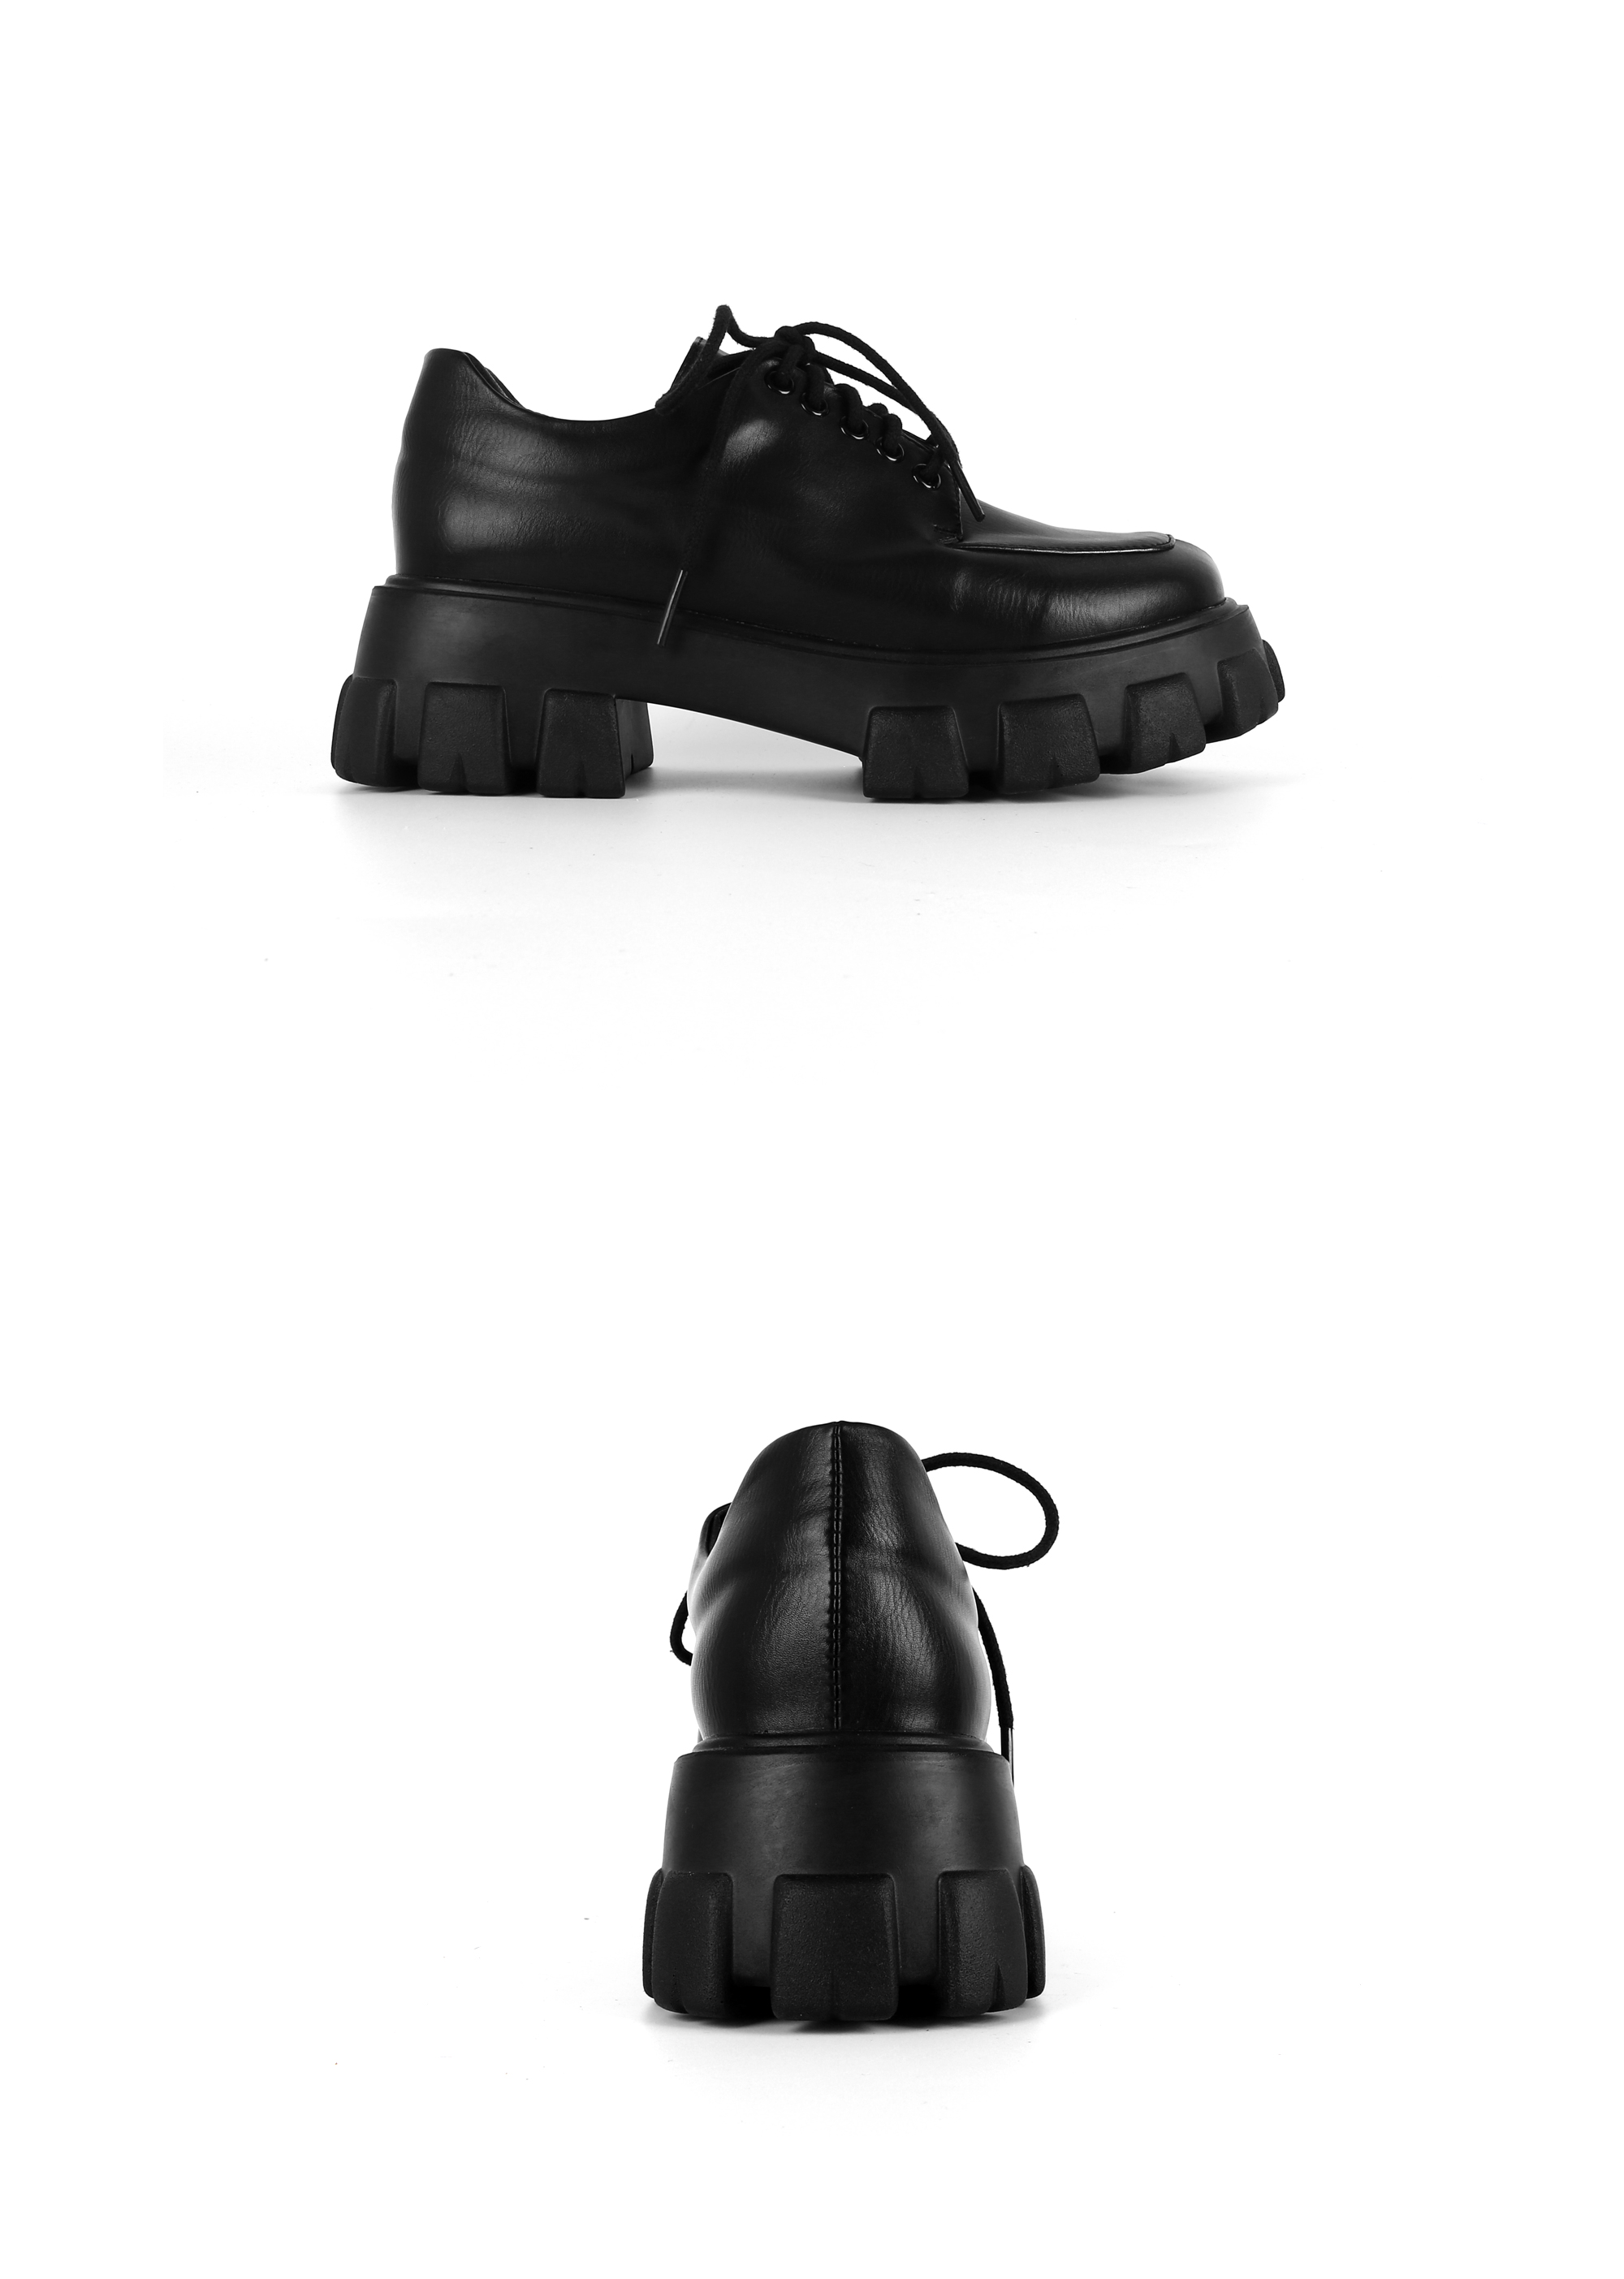 리플라(LI FLA) 19B503 black loafer